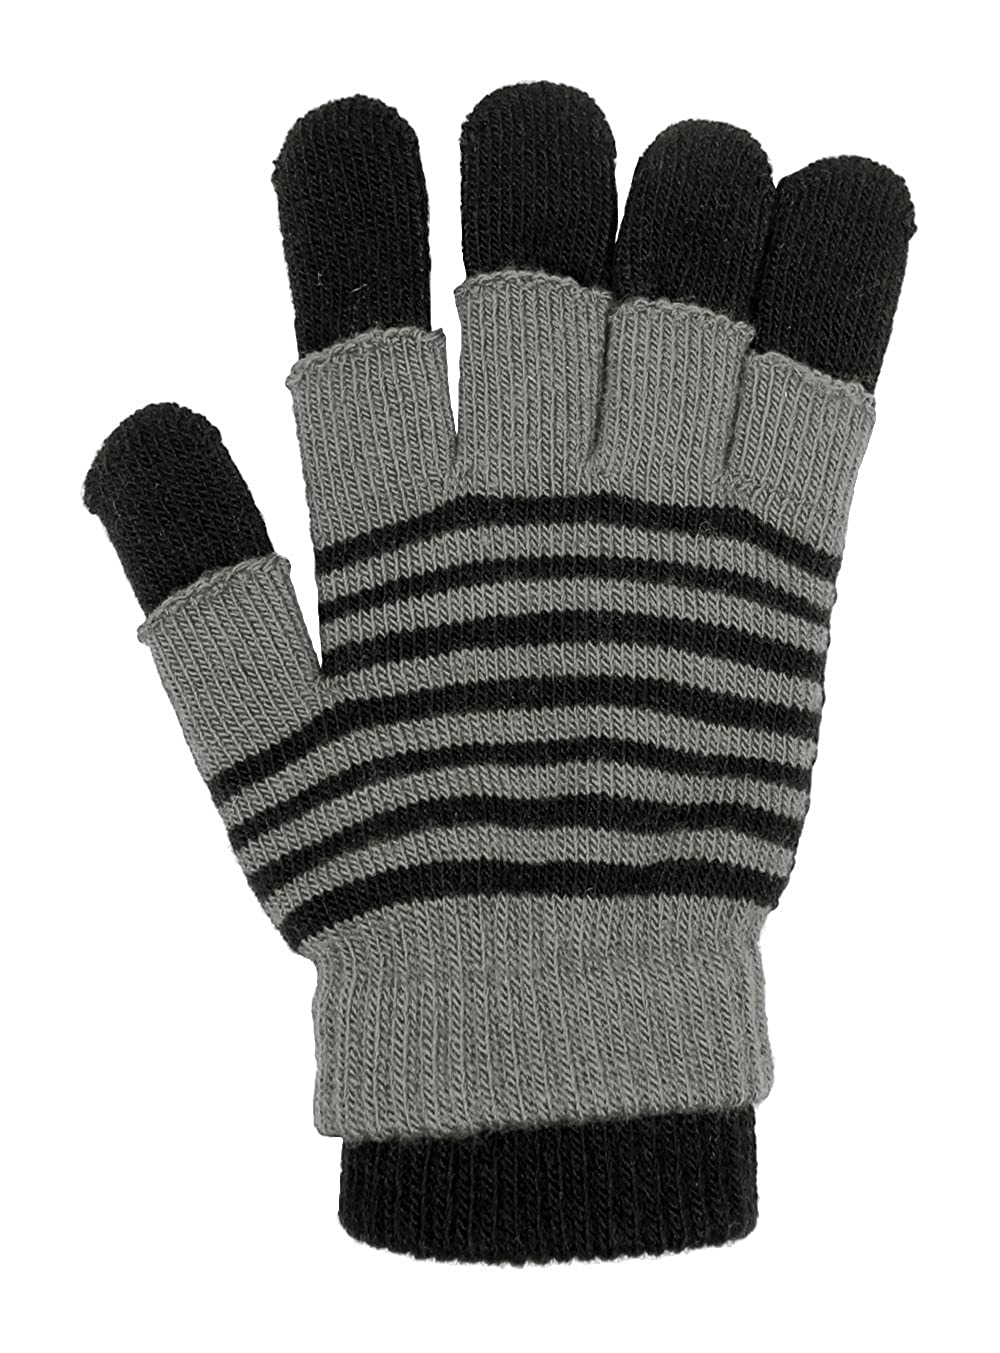 ff6644b01 LL Striped 3 in 1 Convertible Knit Fall Winter Gloves Adults ...